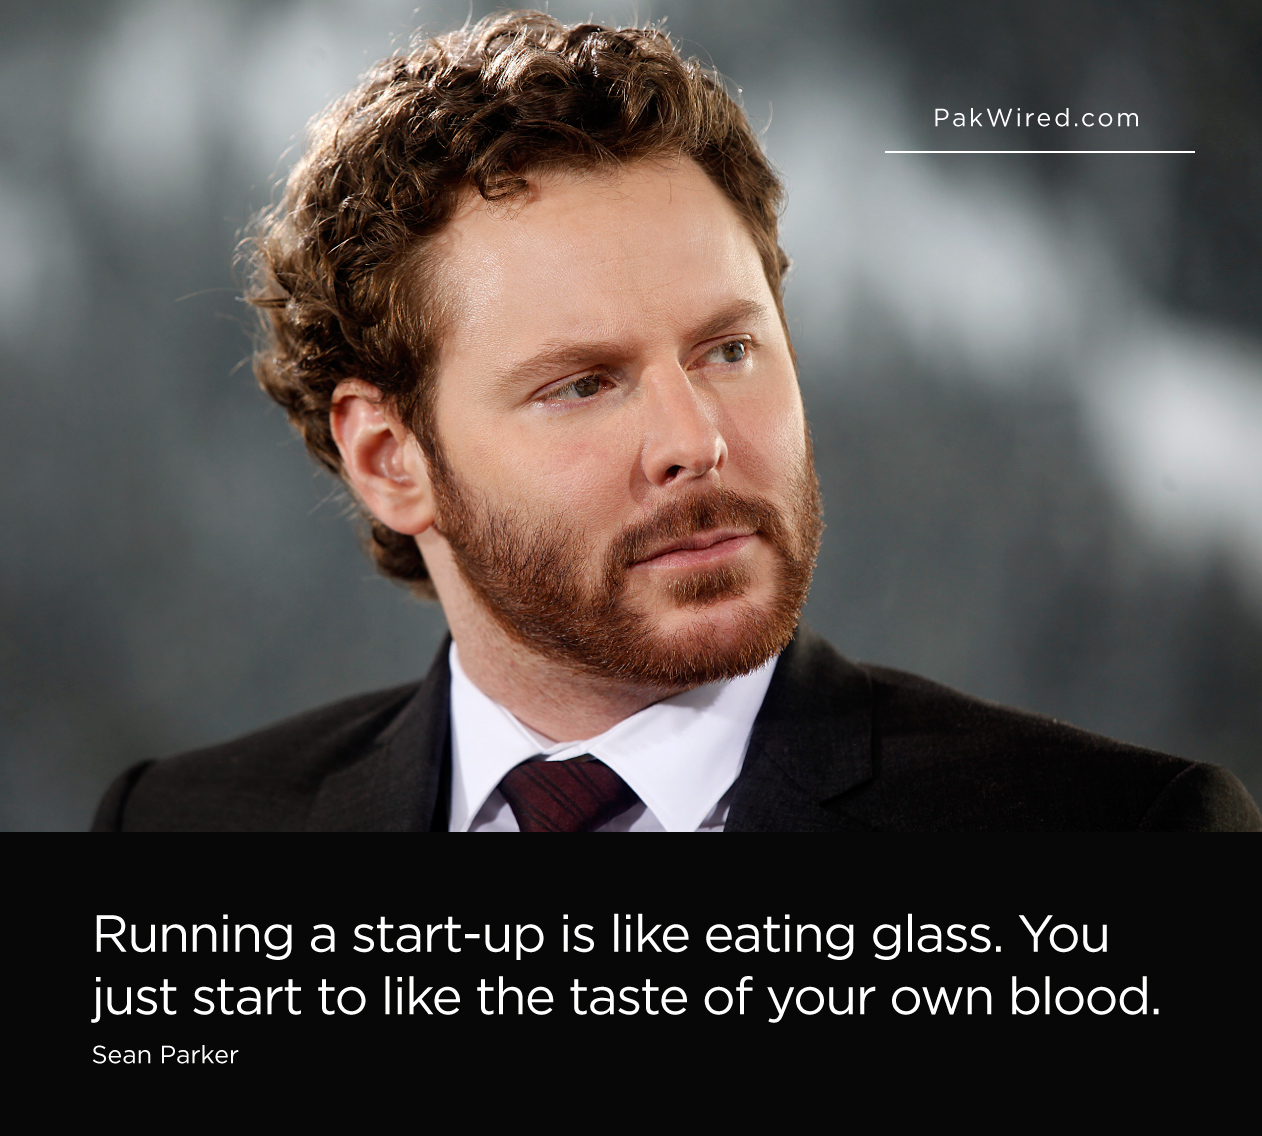 Running a start-up is like eating glass. You just start to like the taste of your own blood. Sean Parker